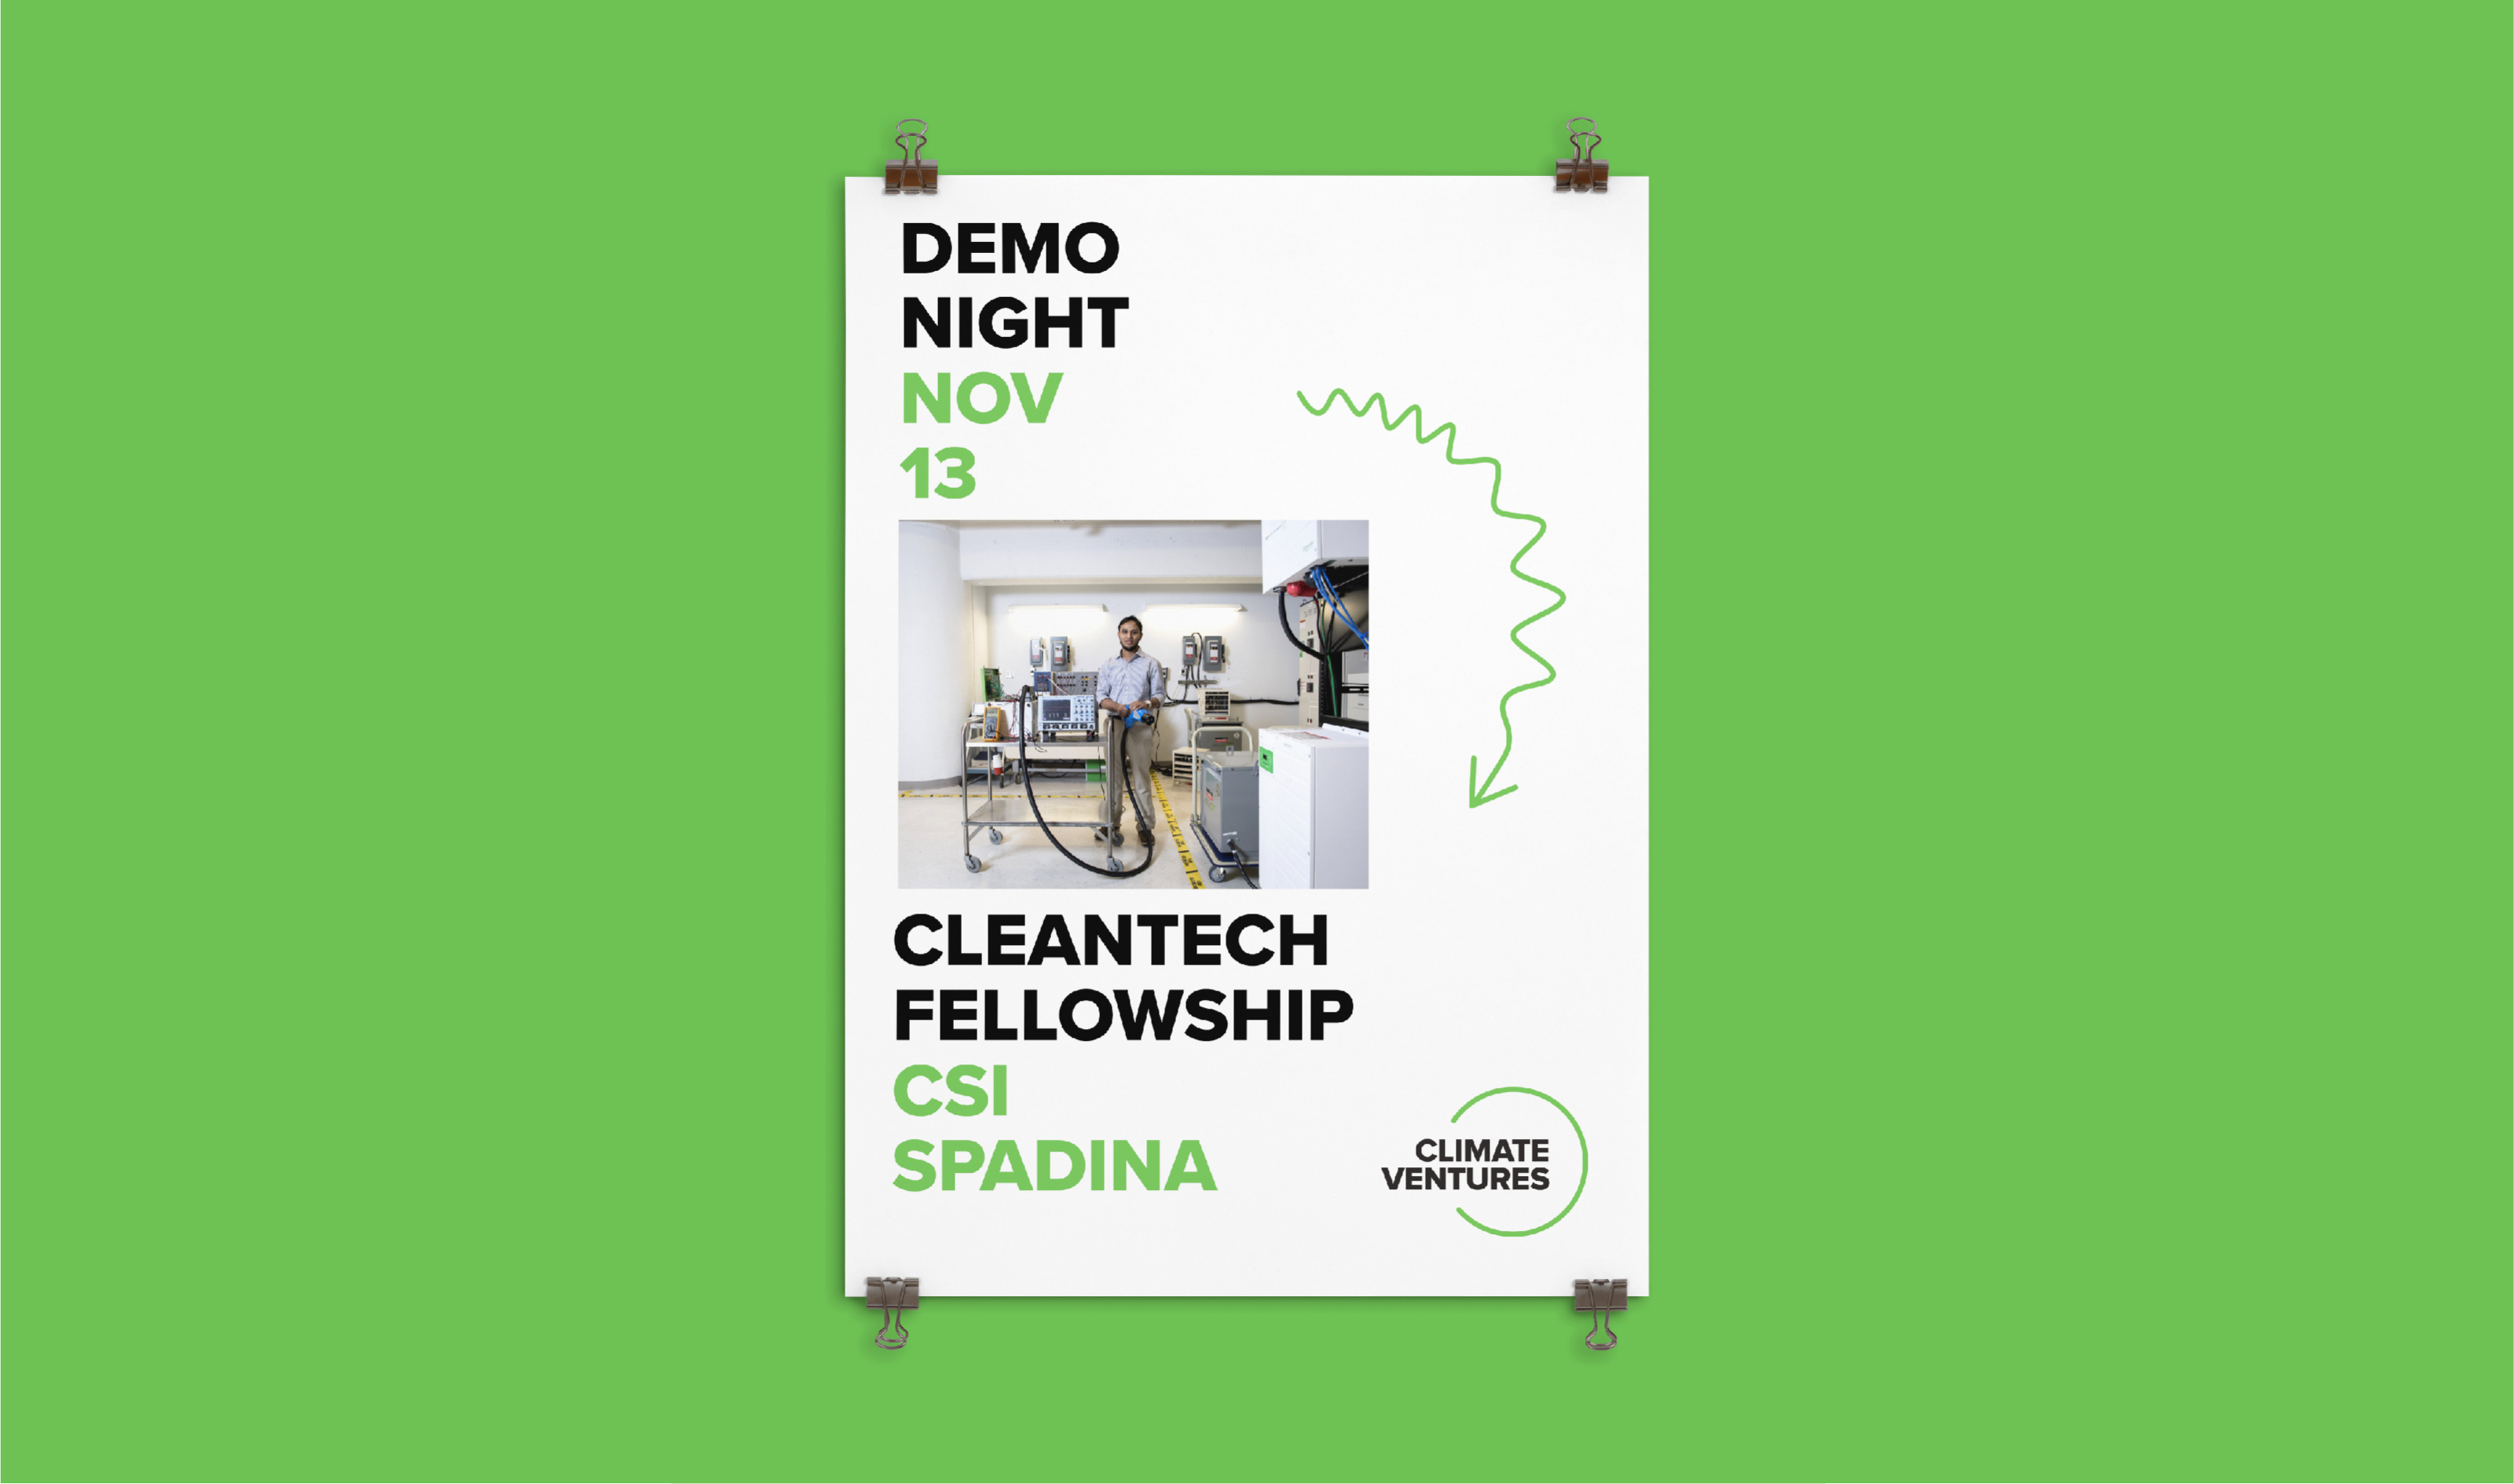 Sample poster or flyer promoting a Climate Ventures Demo Night event for Cleantech Fellowship.